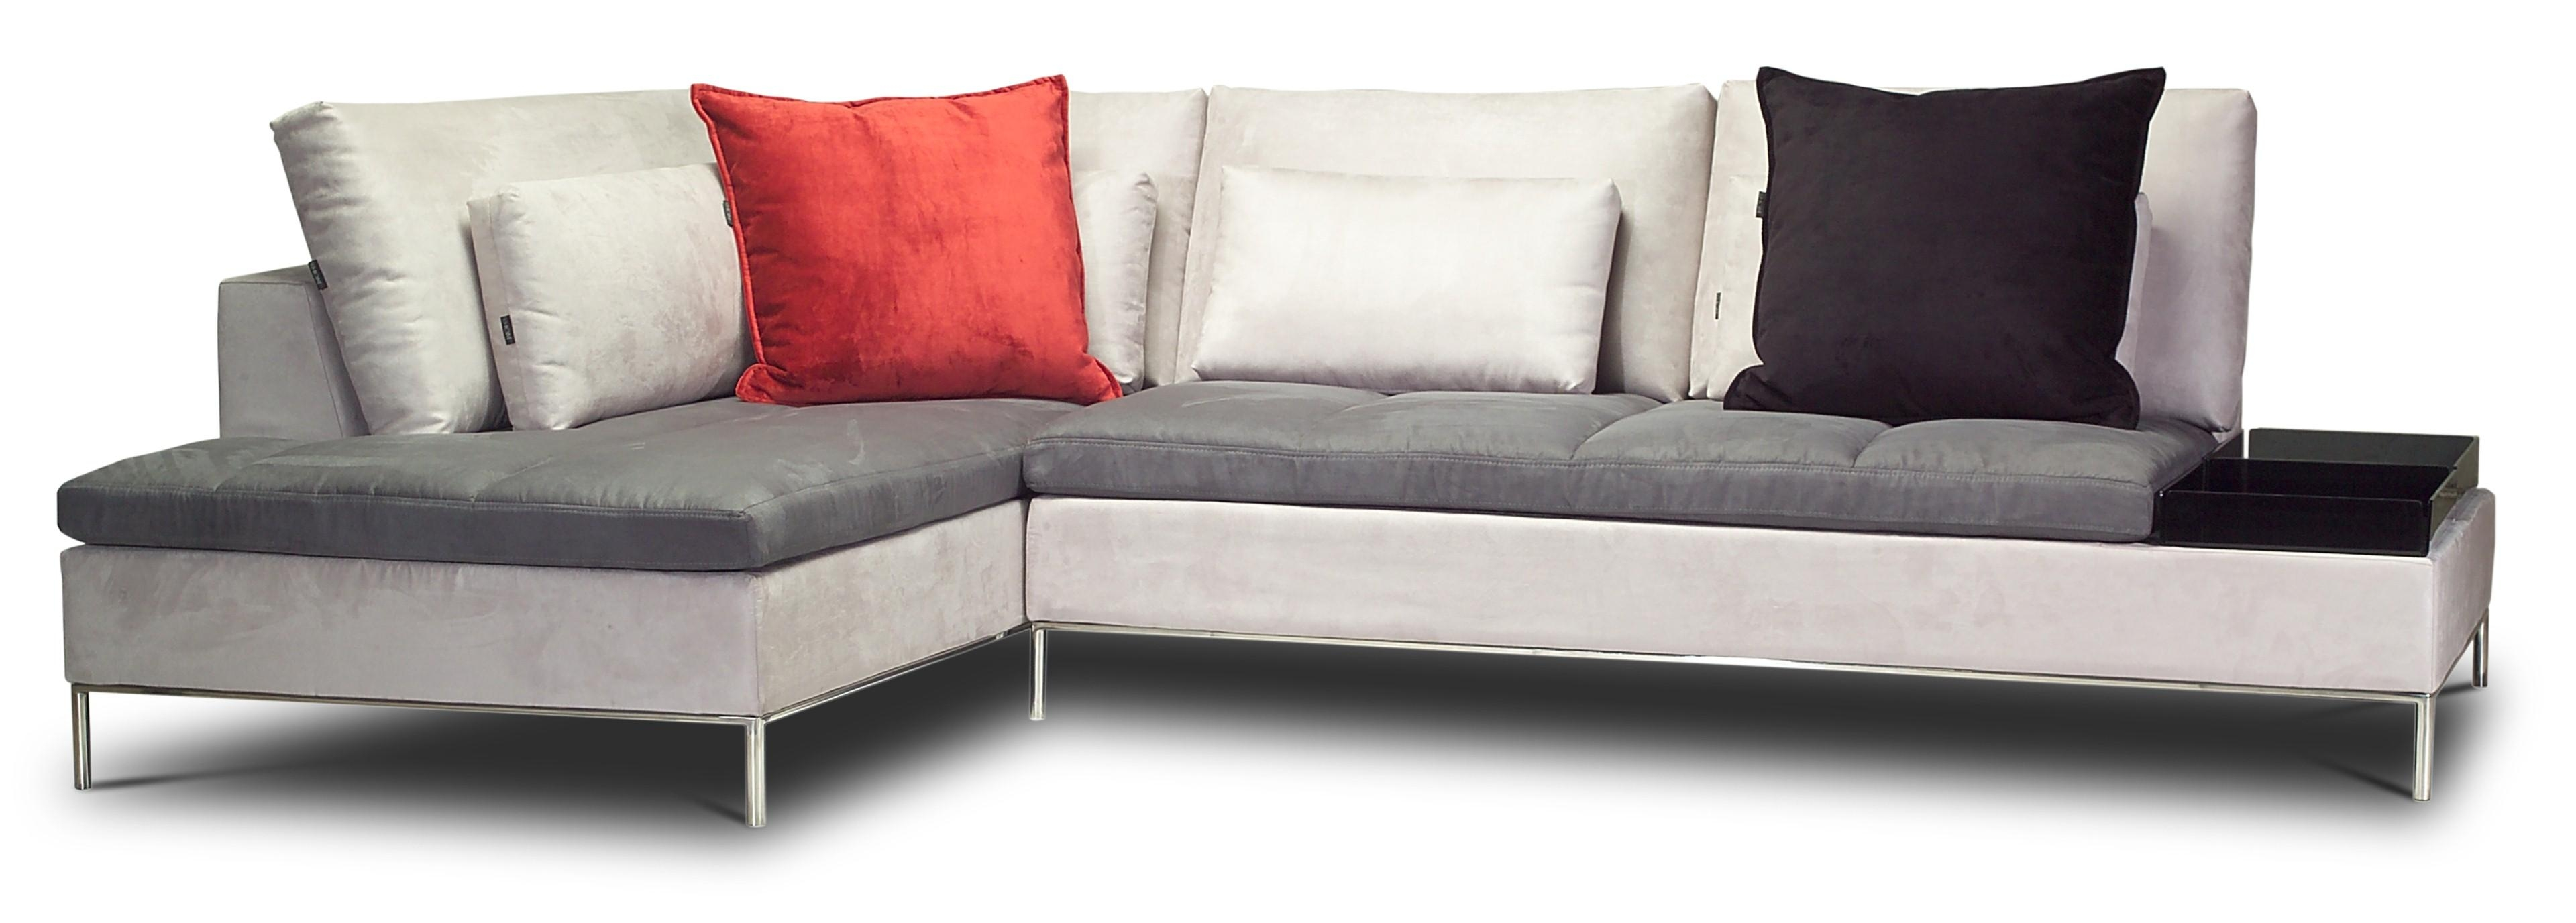 L Shaped Sectional (Image 6 of 20)